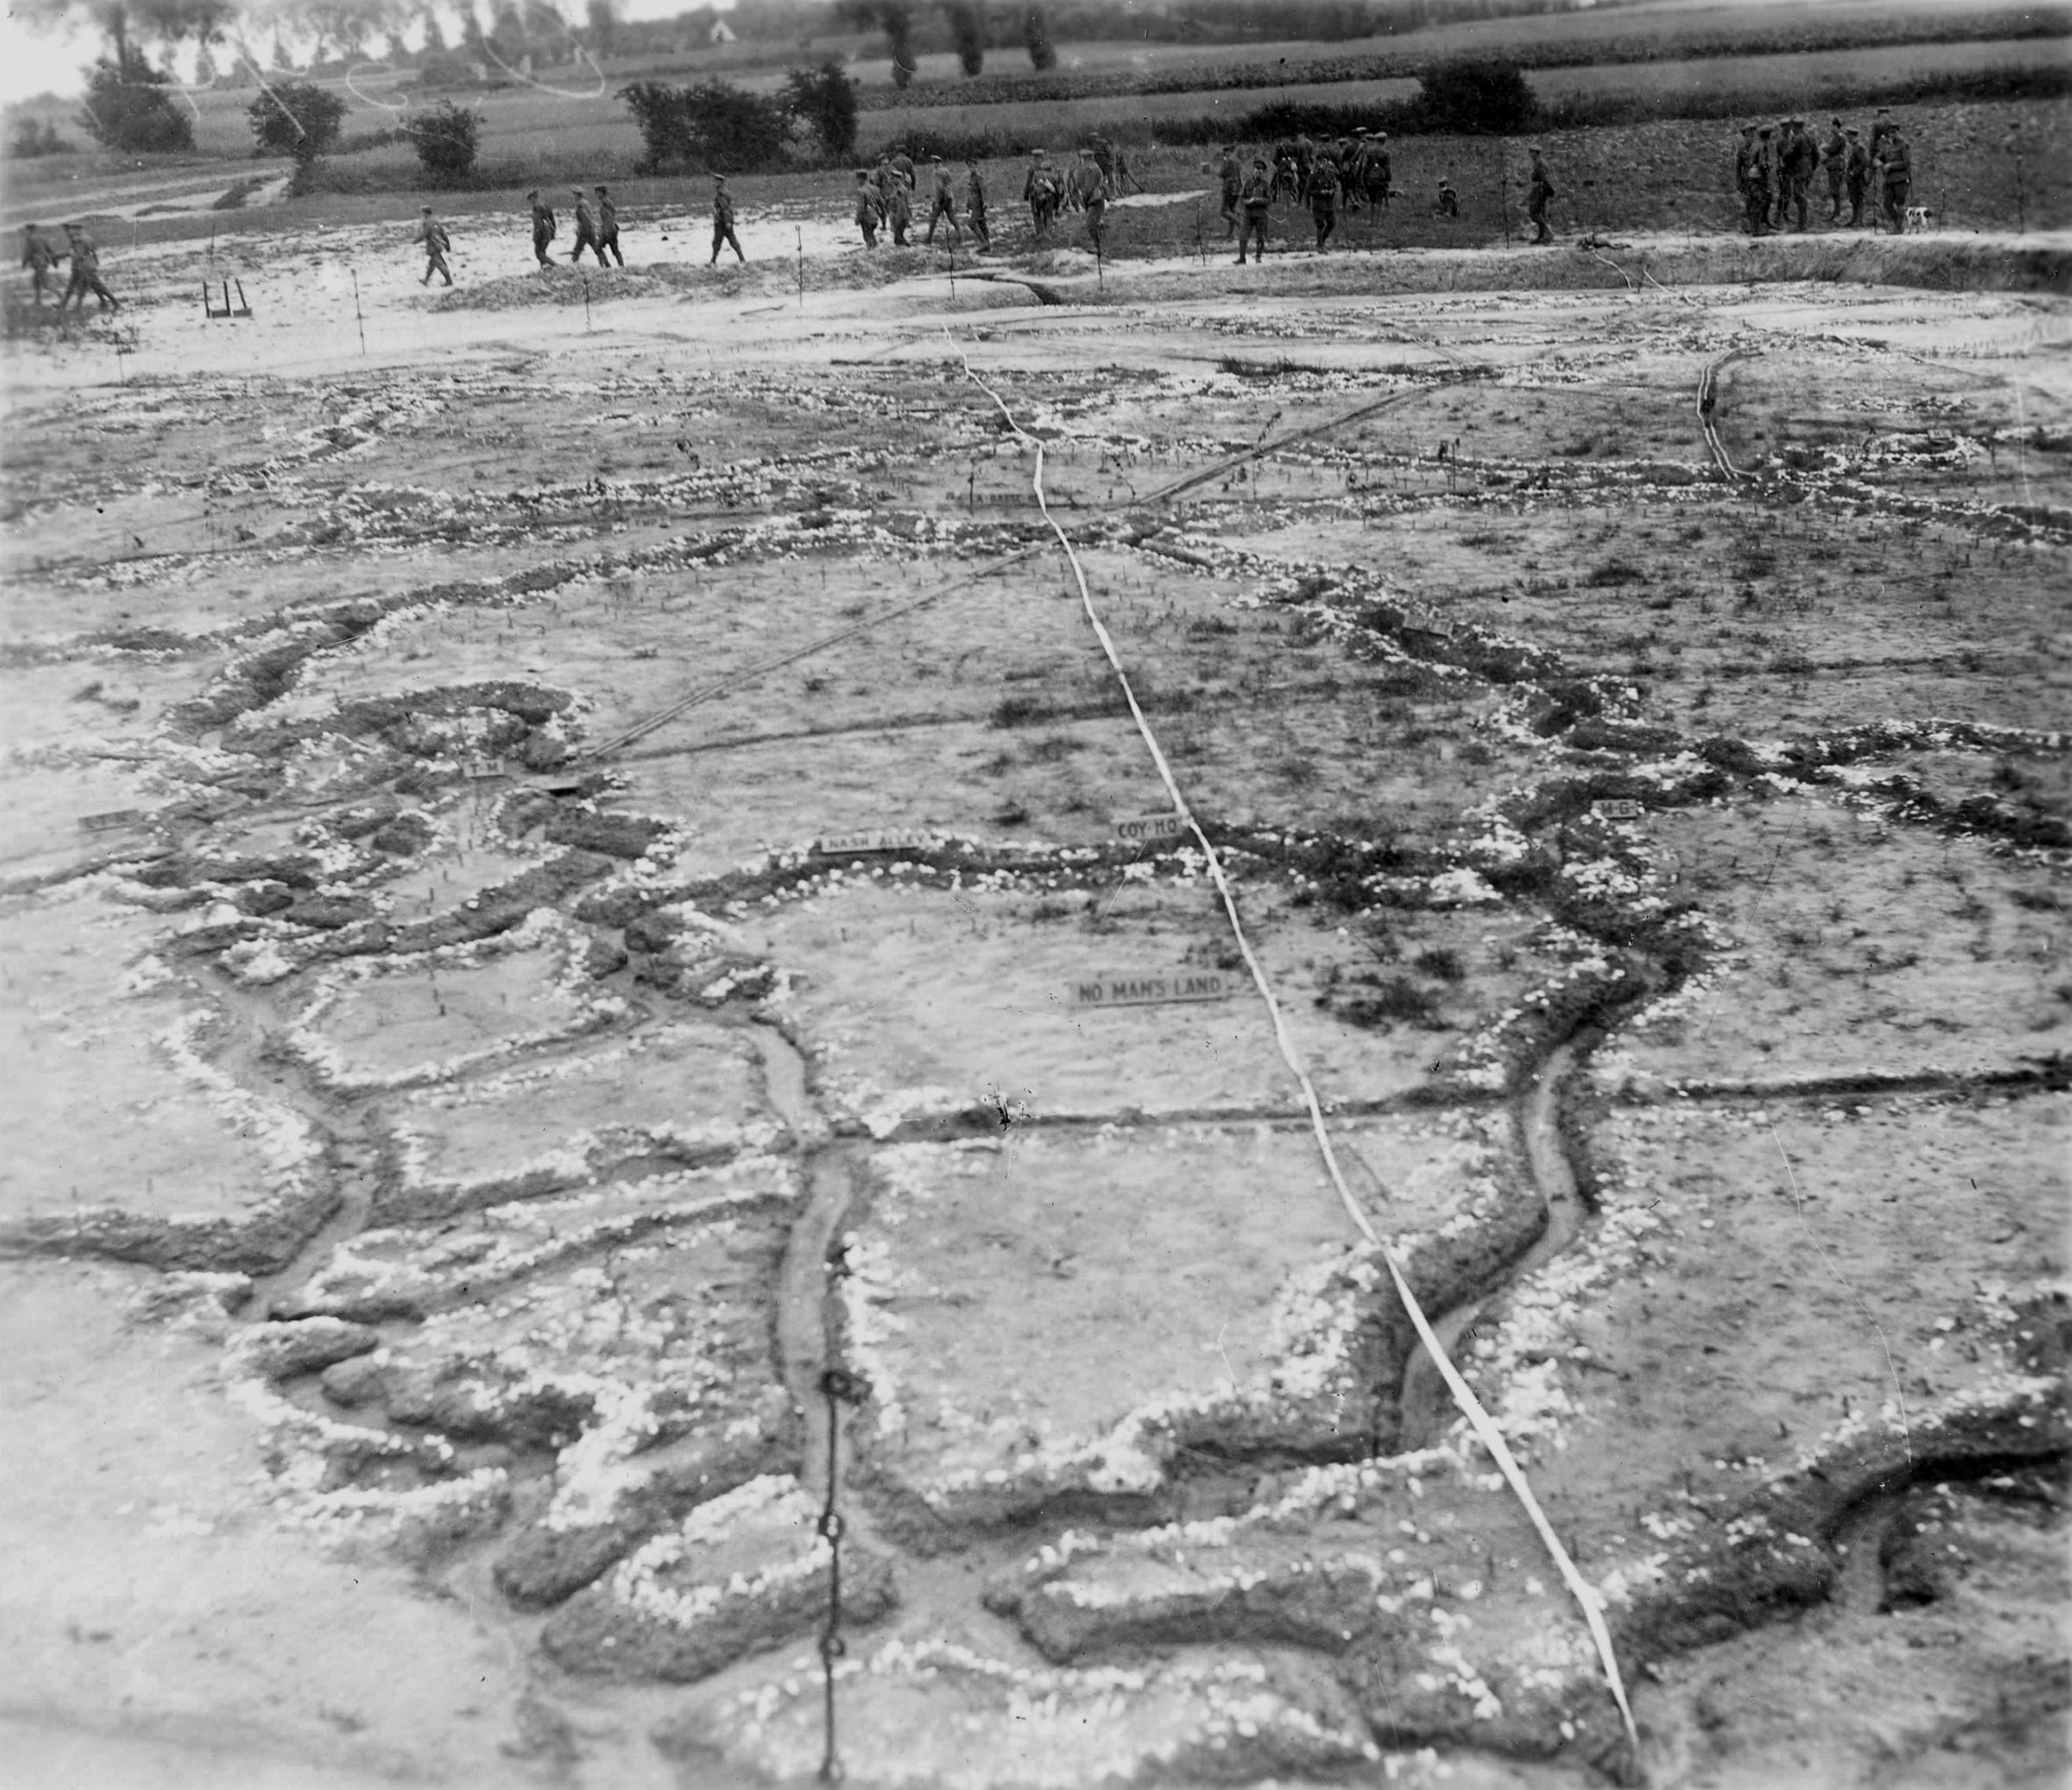 battle of vimy ridge essays The battle of vimy ridge was part of the battle of arras, in the nord-pas-de-calais region of france, during the first world war the main combatants were the four divisions of the canadian corps in the.